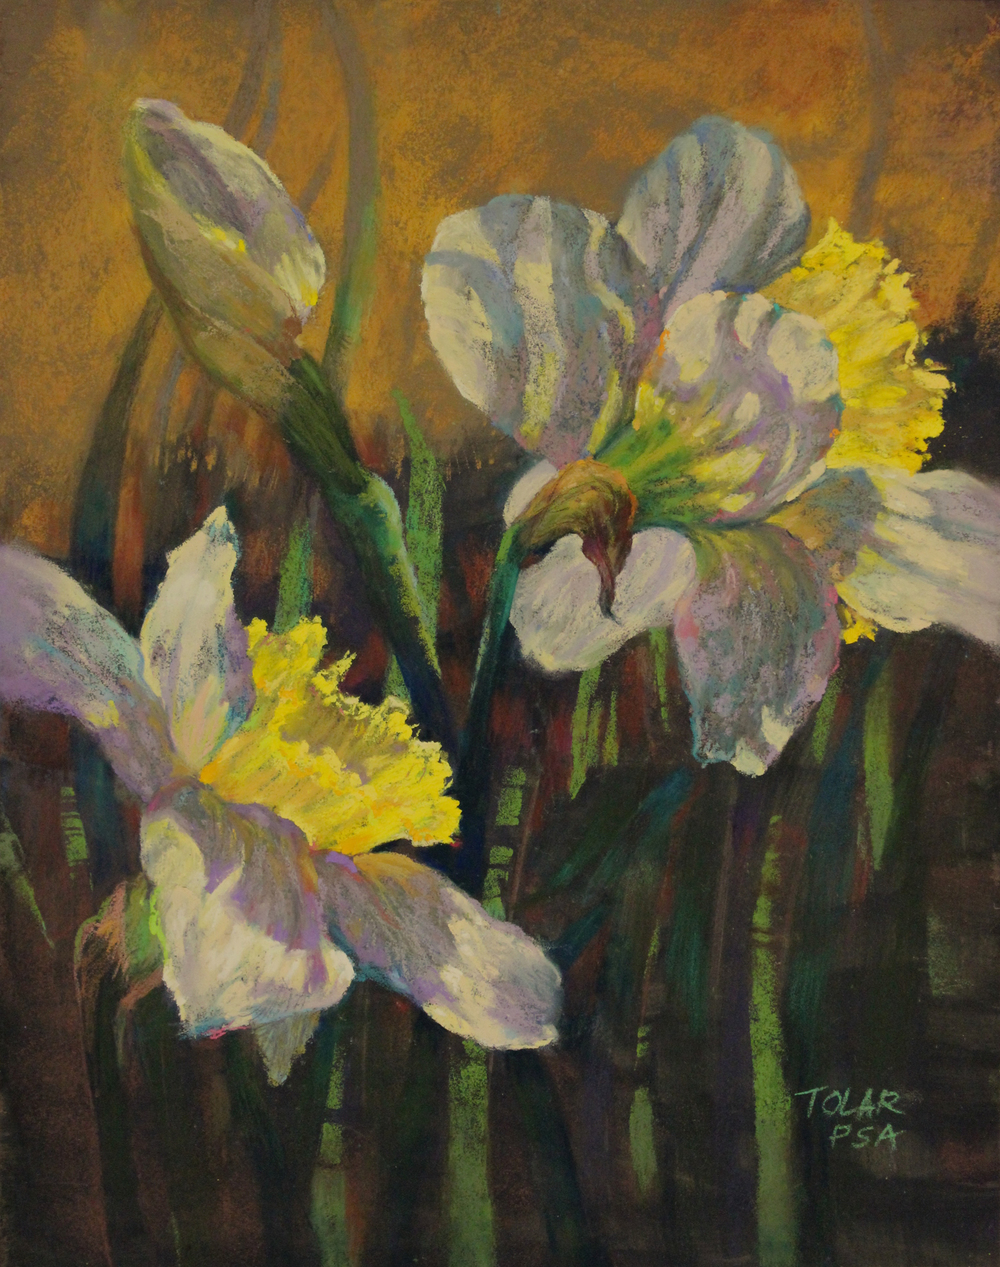 """Backlit Daffodils"" by Jude Tolar"